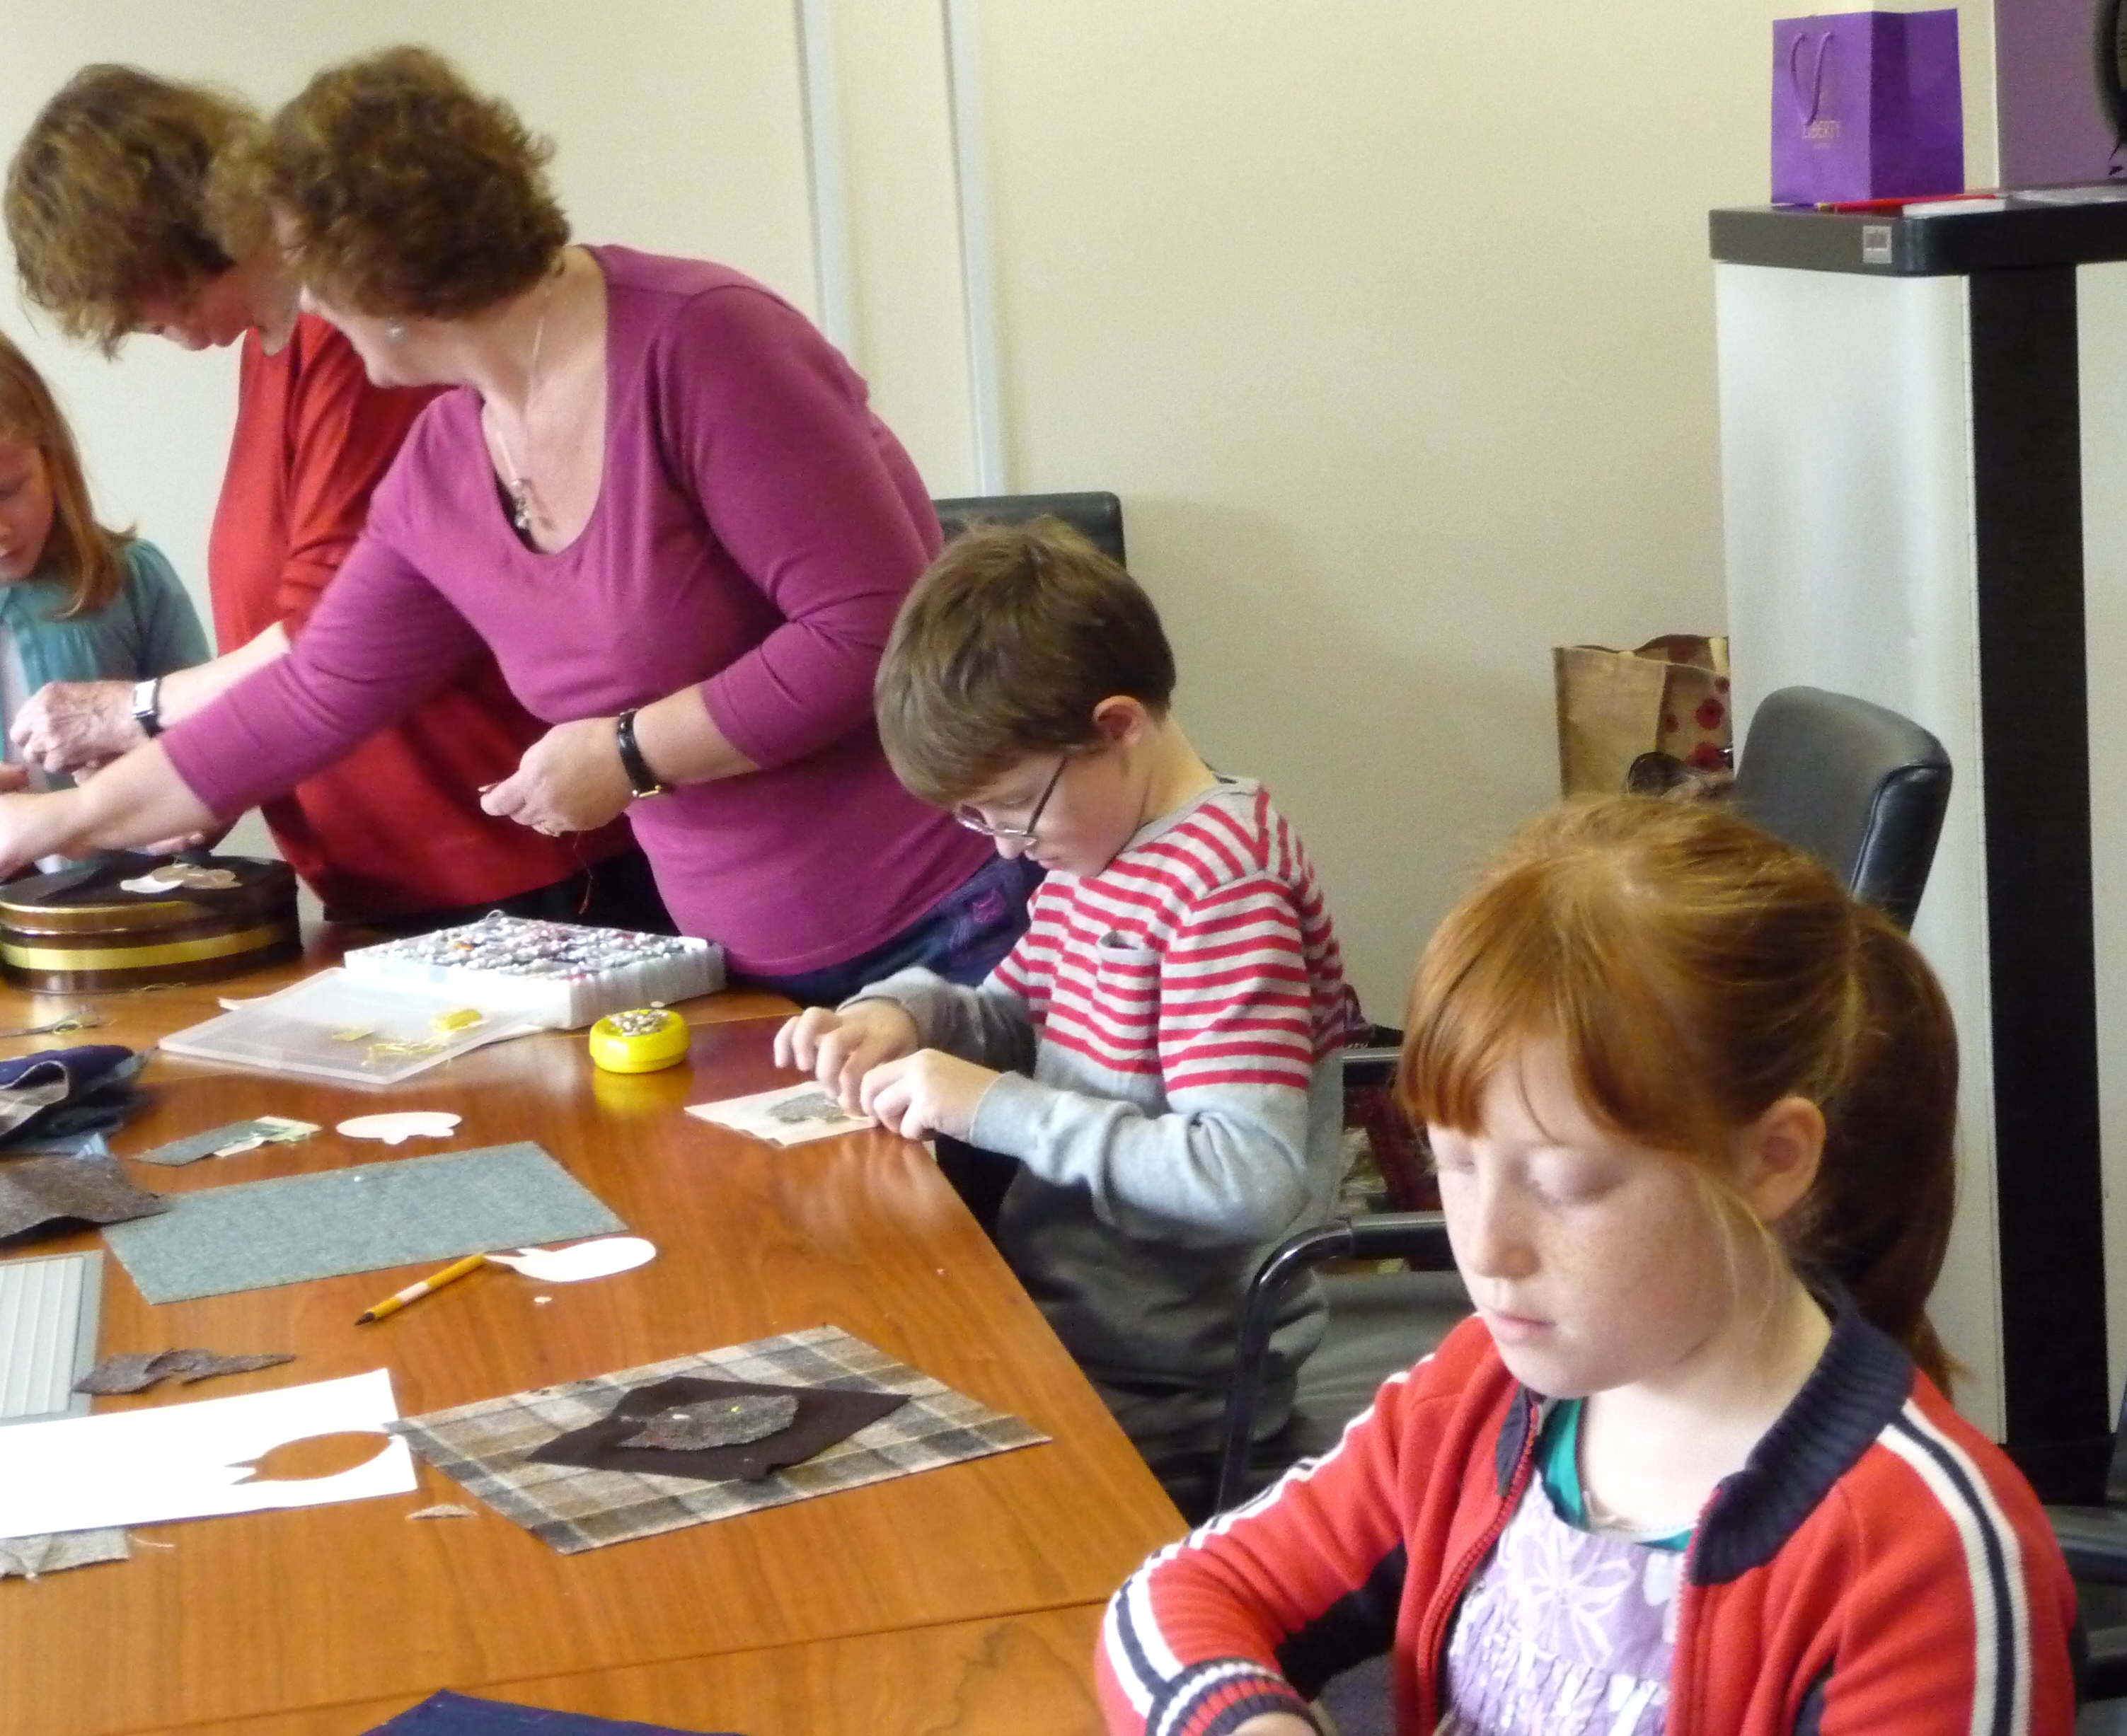 Fionn and Eilis are concentrating on their stitching